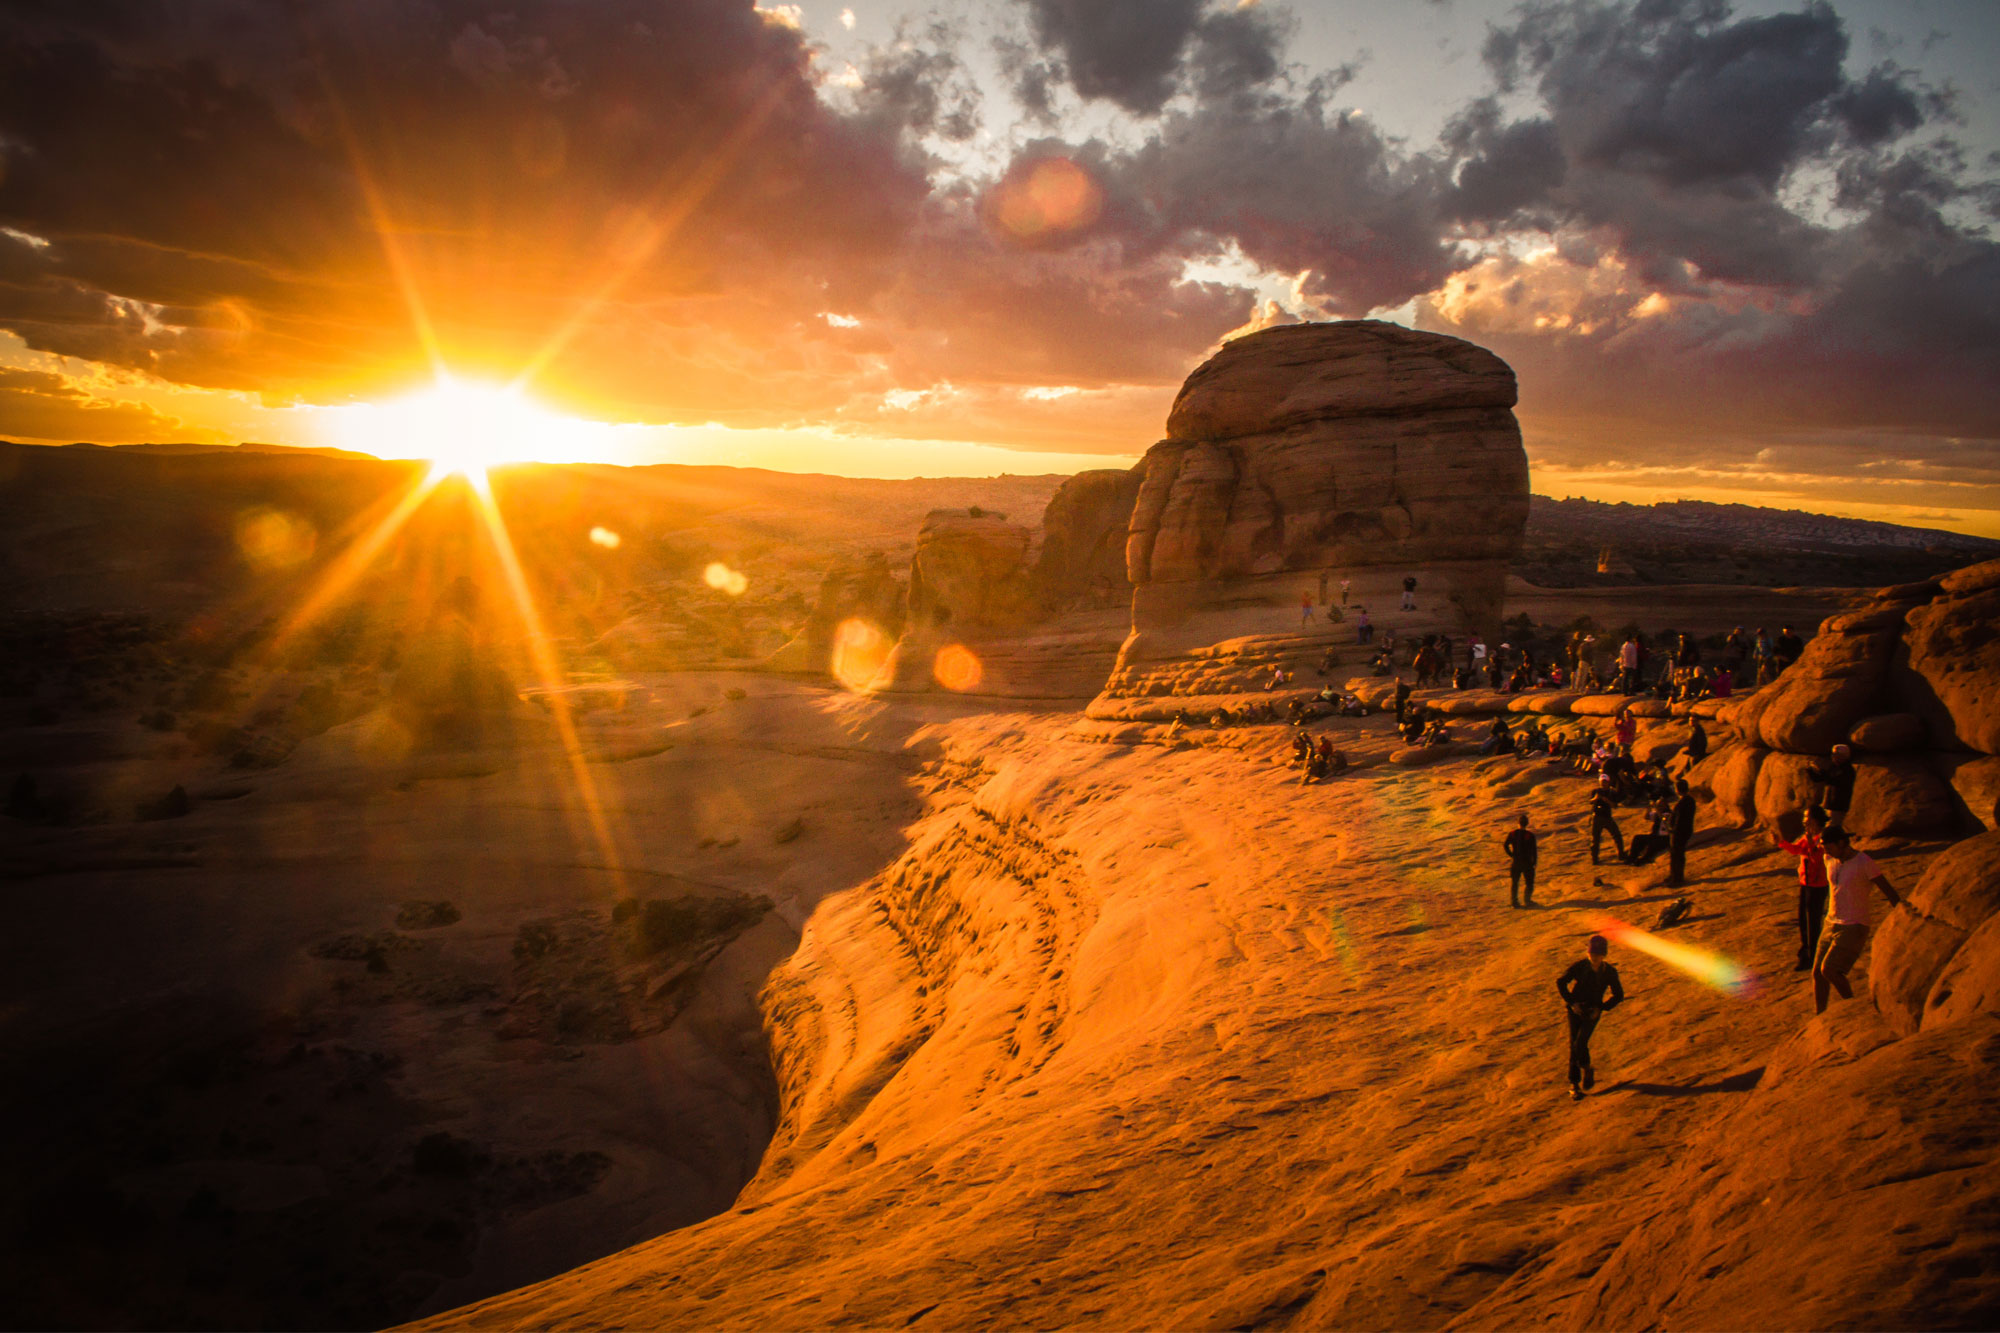 The Crowd at Delicate Arch, Arches National Park